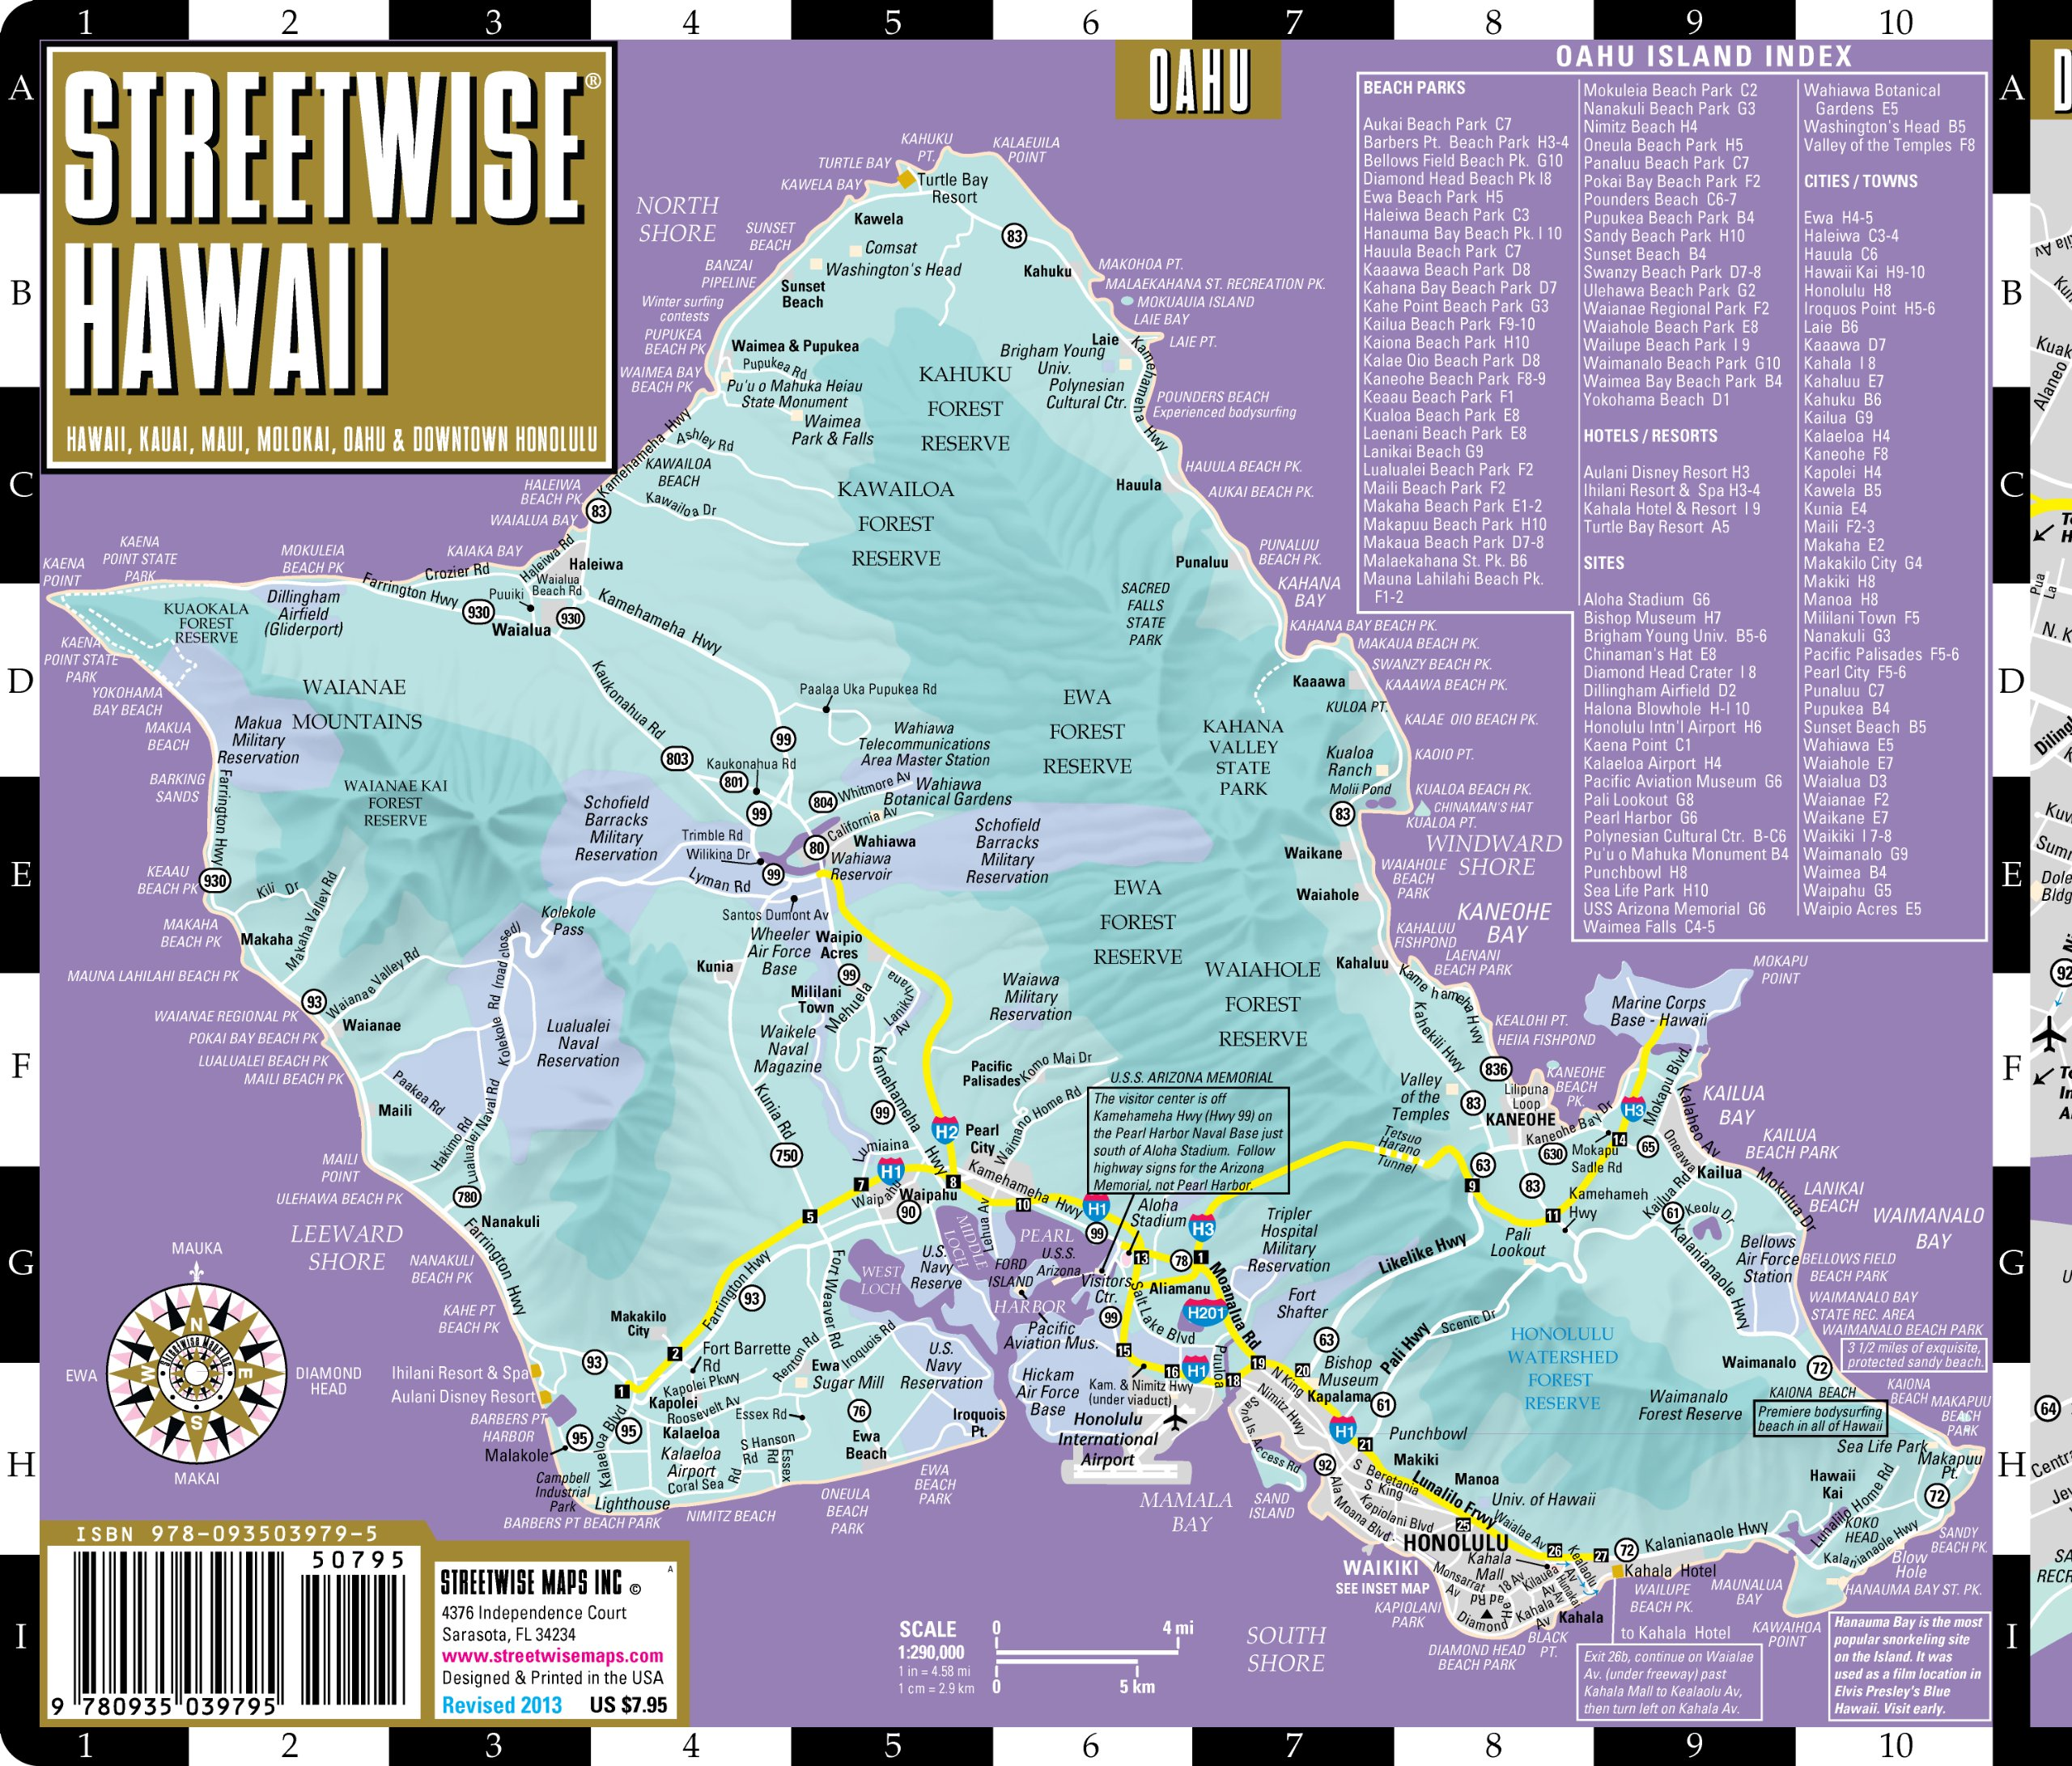 Streetwise Hawaii Map Laminated State Road Map of Hawaii – Kauai Tourist Map